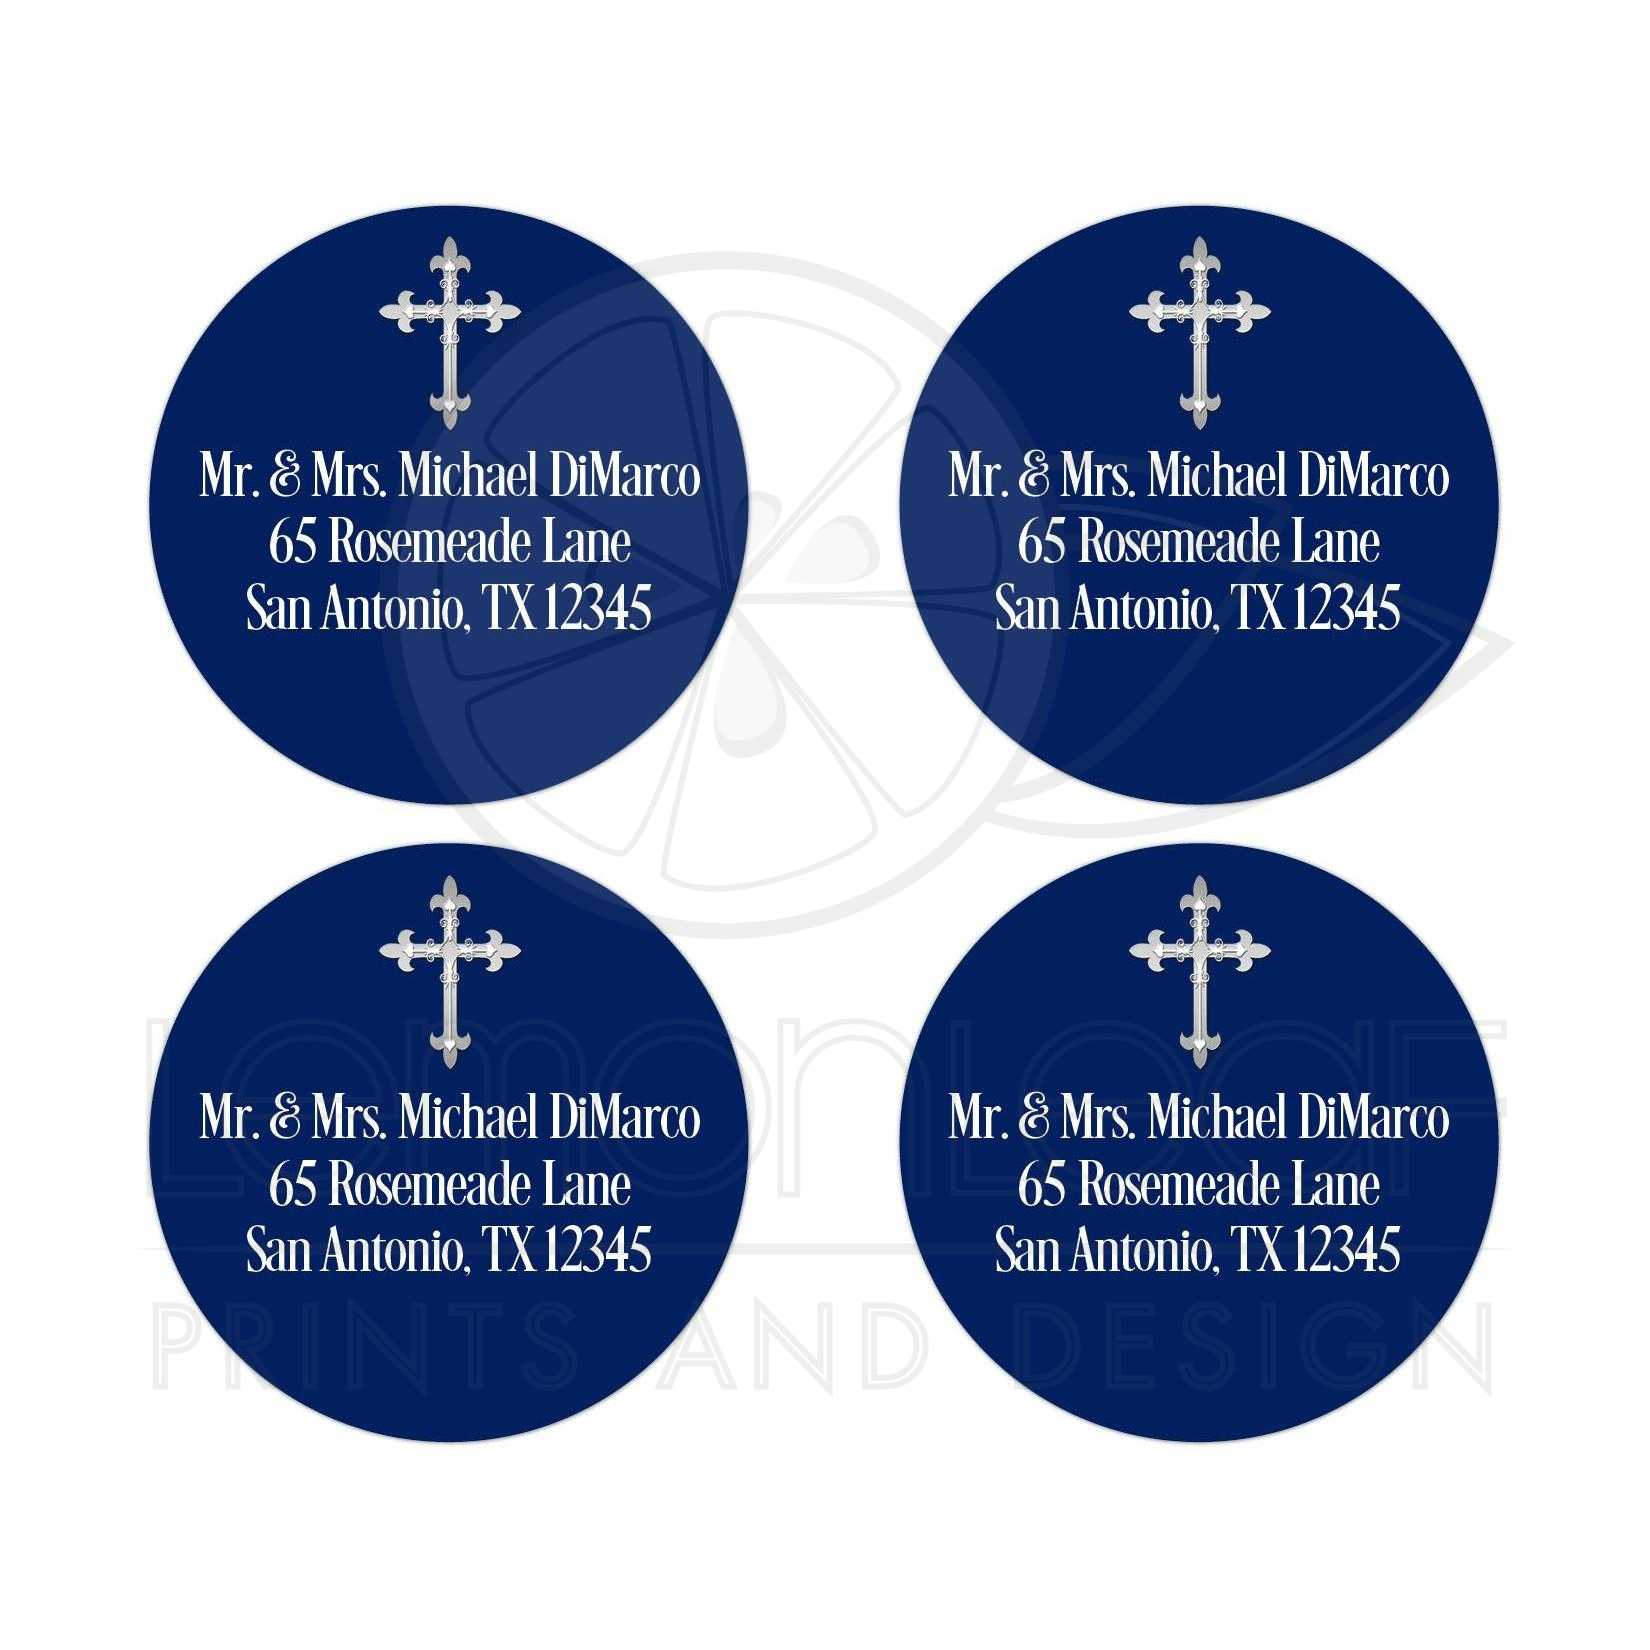 personalized envelope seals or favor stickers navy blue white